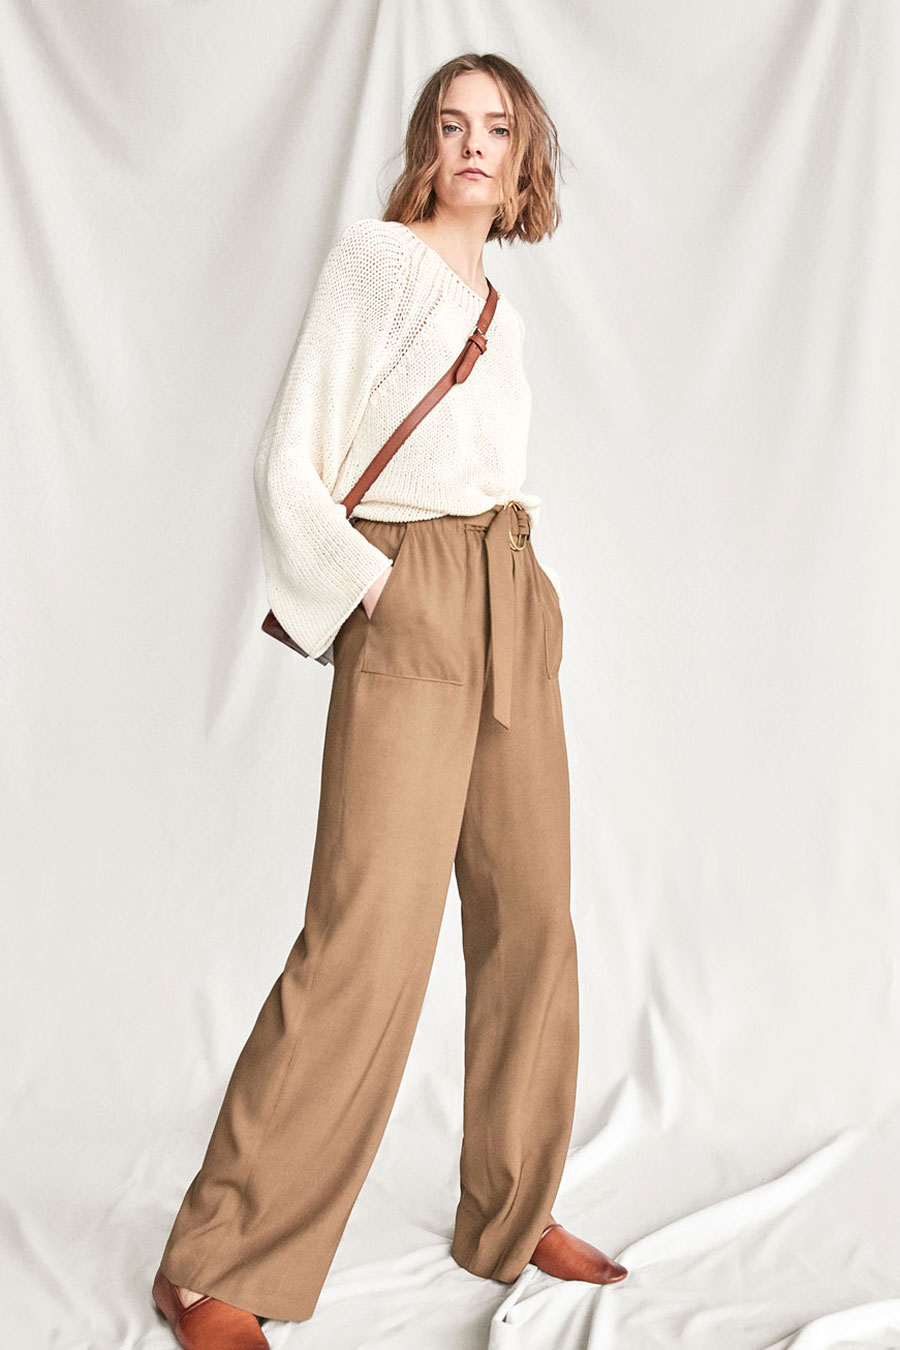 Massimo Dutti Trousers with Ring Detail